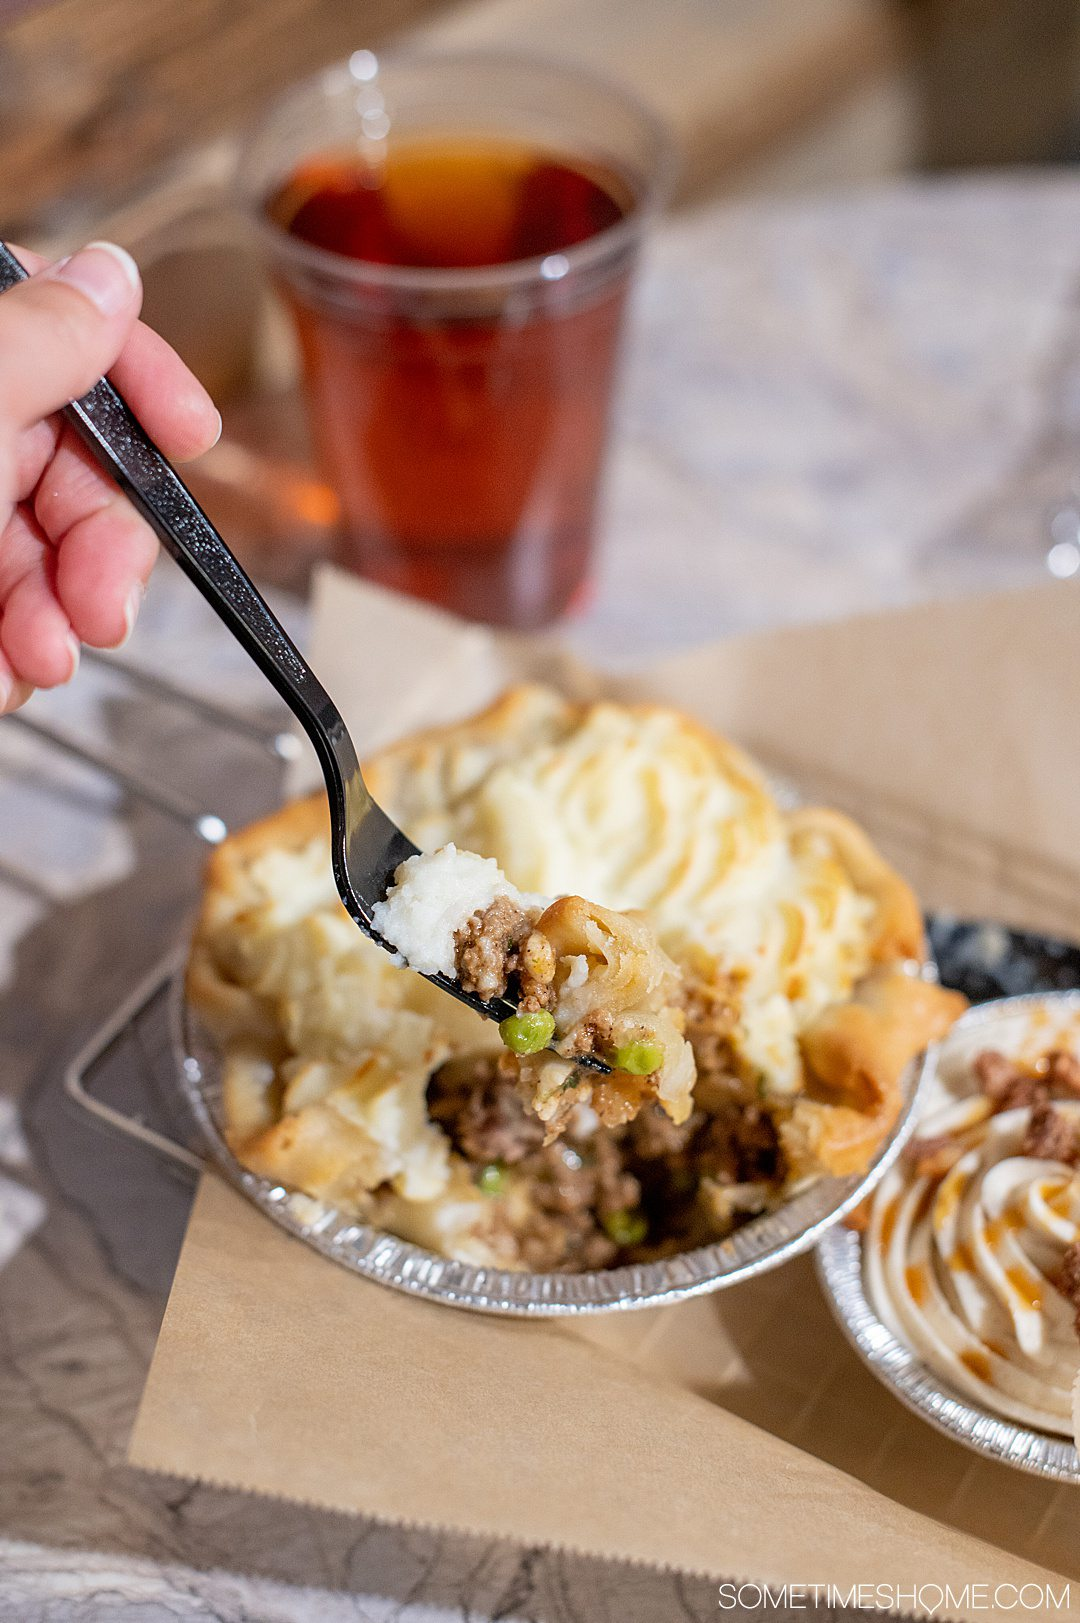 A fork with a taste of Shepherd's pie at Fayetteville Pie Company in Fayetteville, NC.